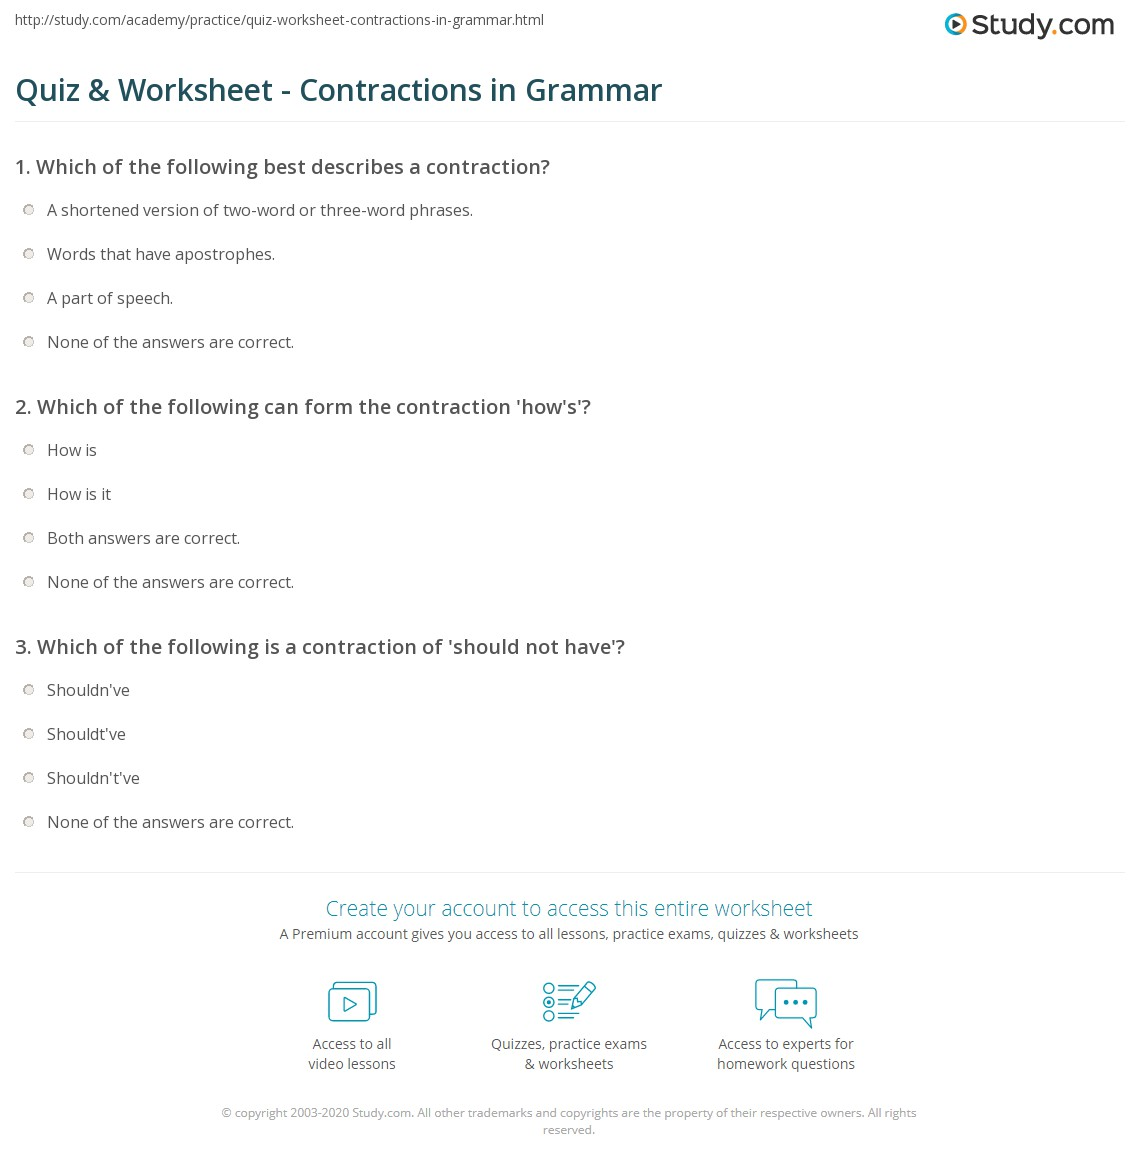 Quiz & Worksheet Contractions in Grammar